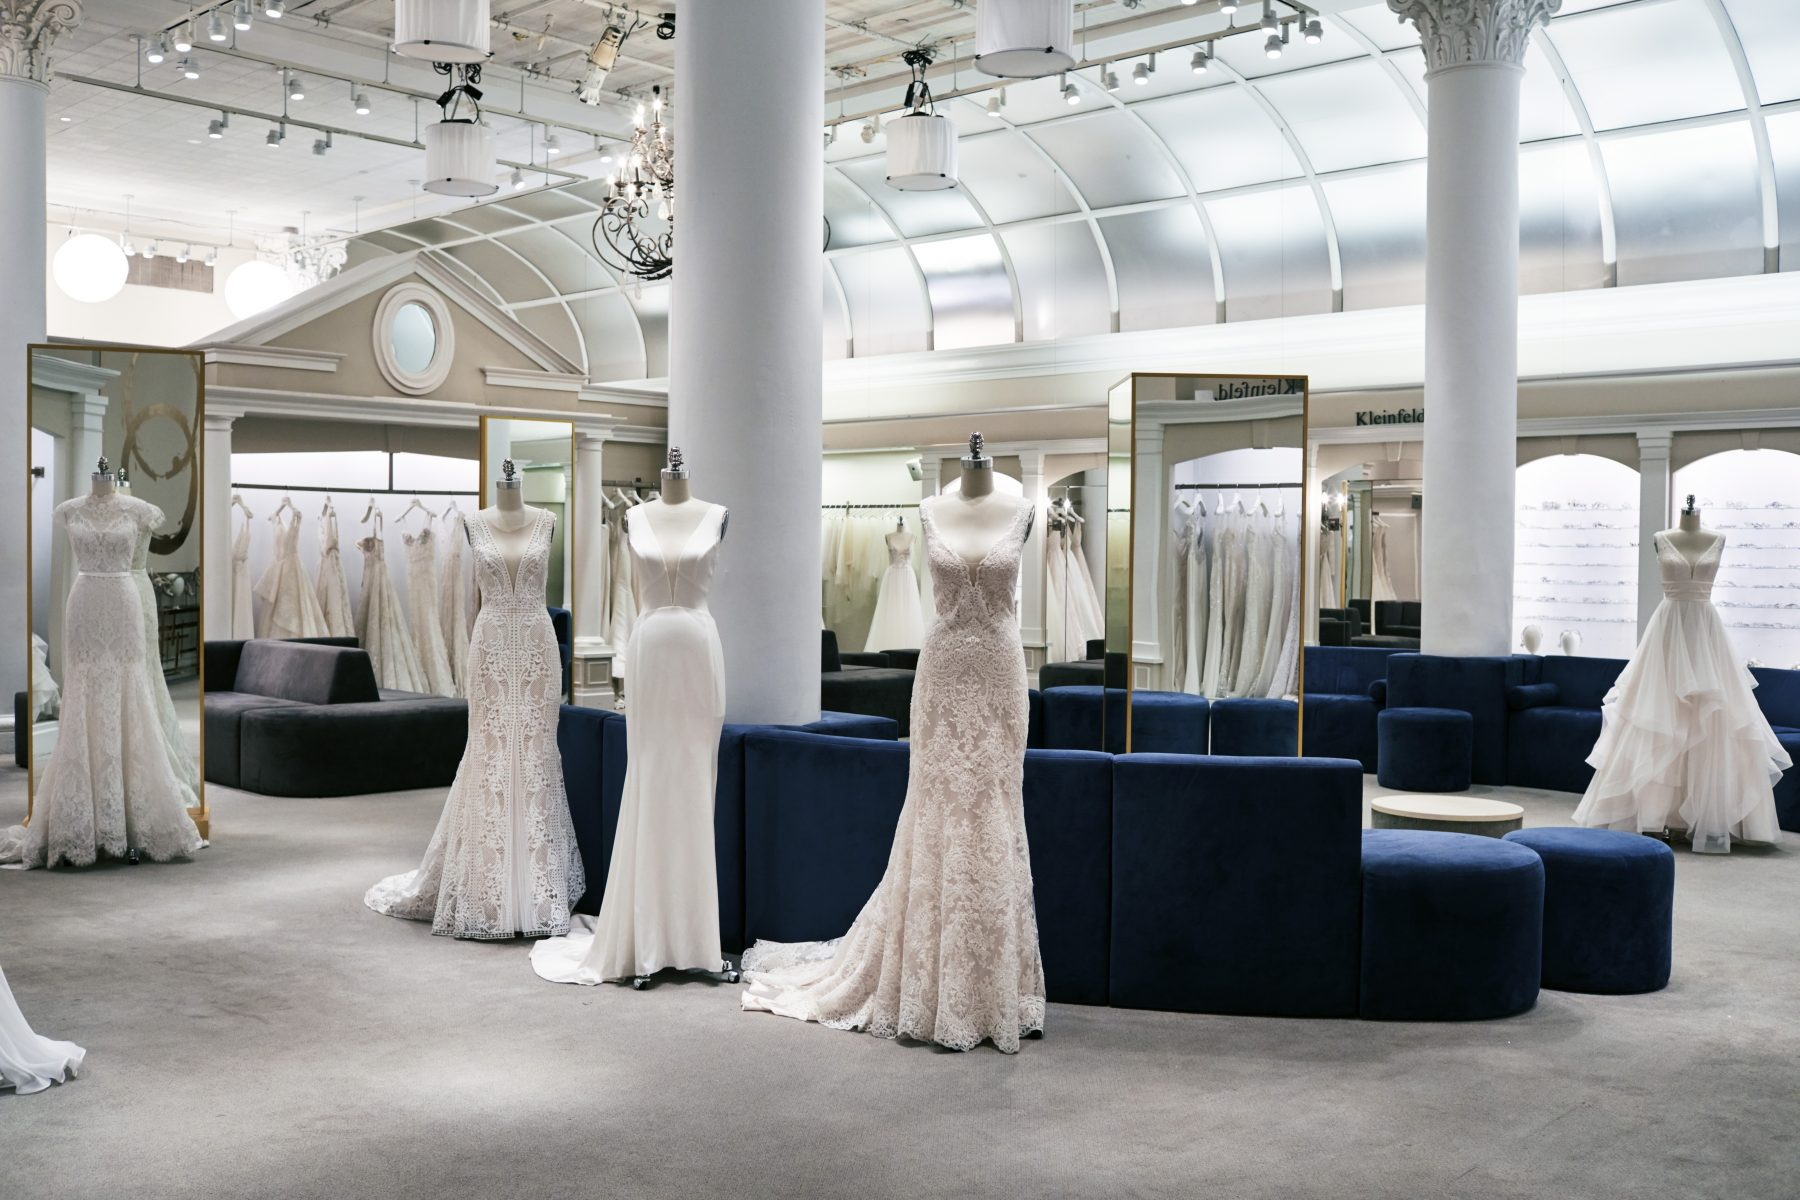 Kleinfeld Bridal The Largest Selection Of Wedding Dresses In The World